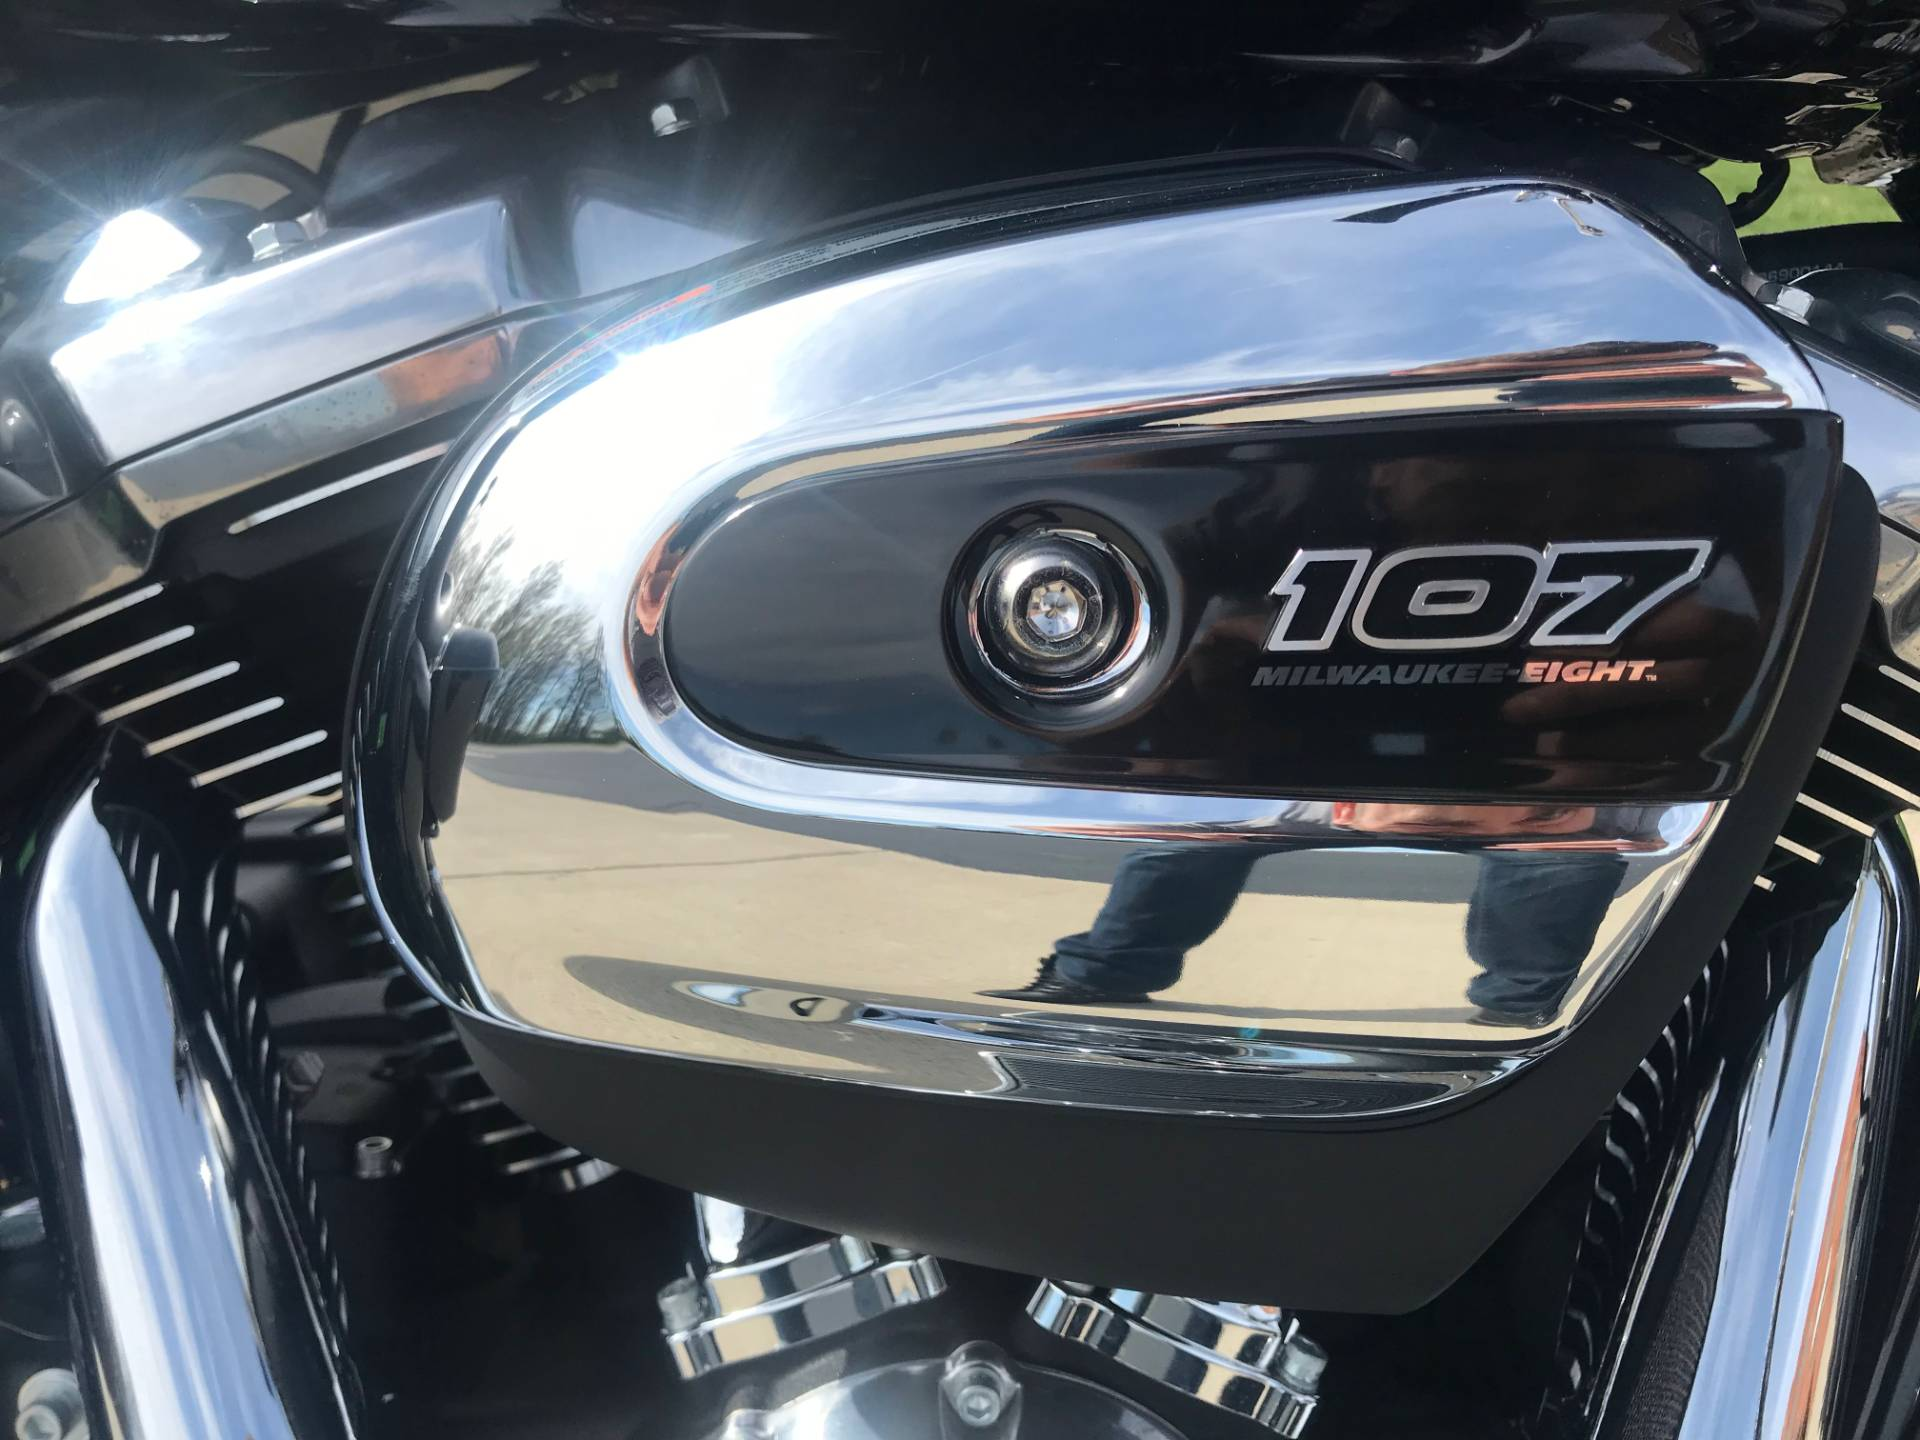 2020 Harley-Davidson Electra Glide® Standard in Sunbury, Ohio - Photo 16